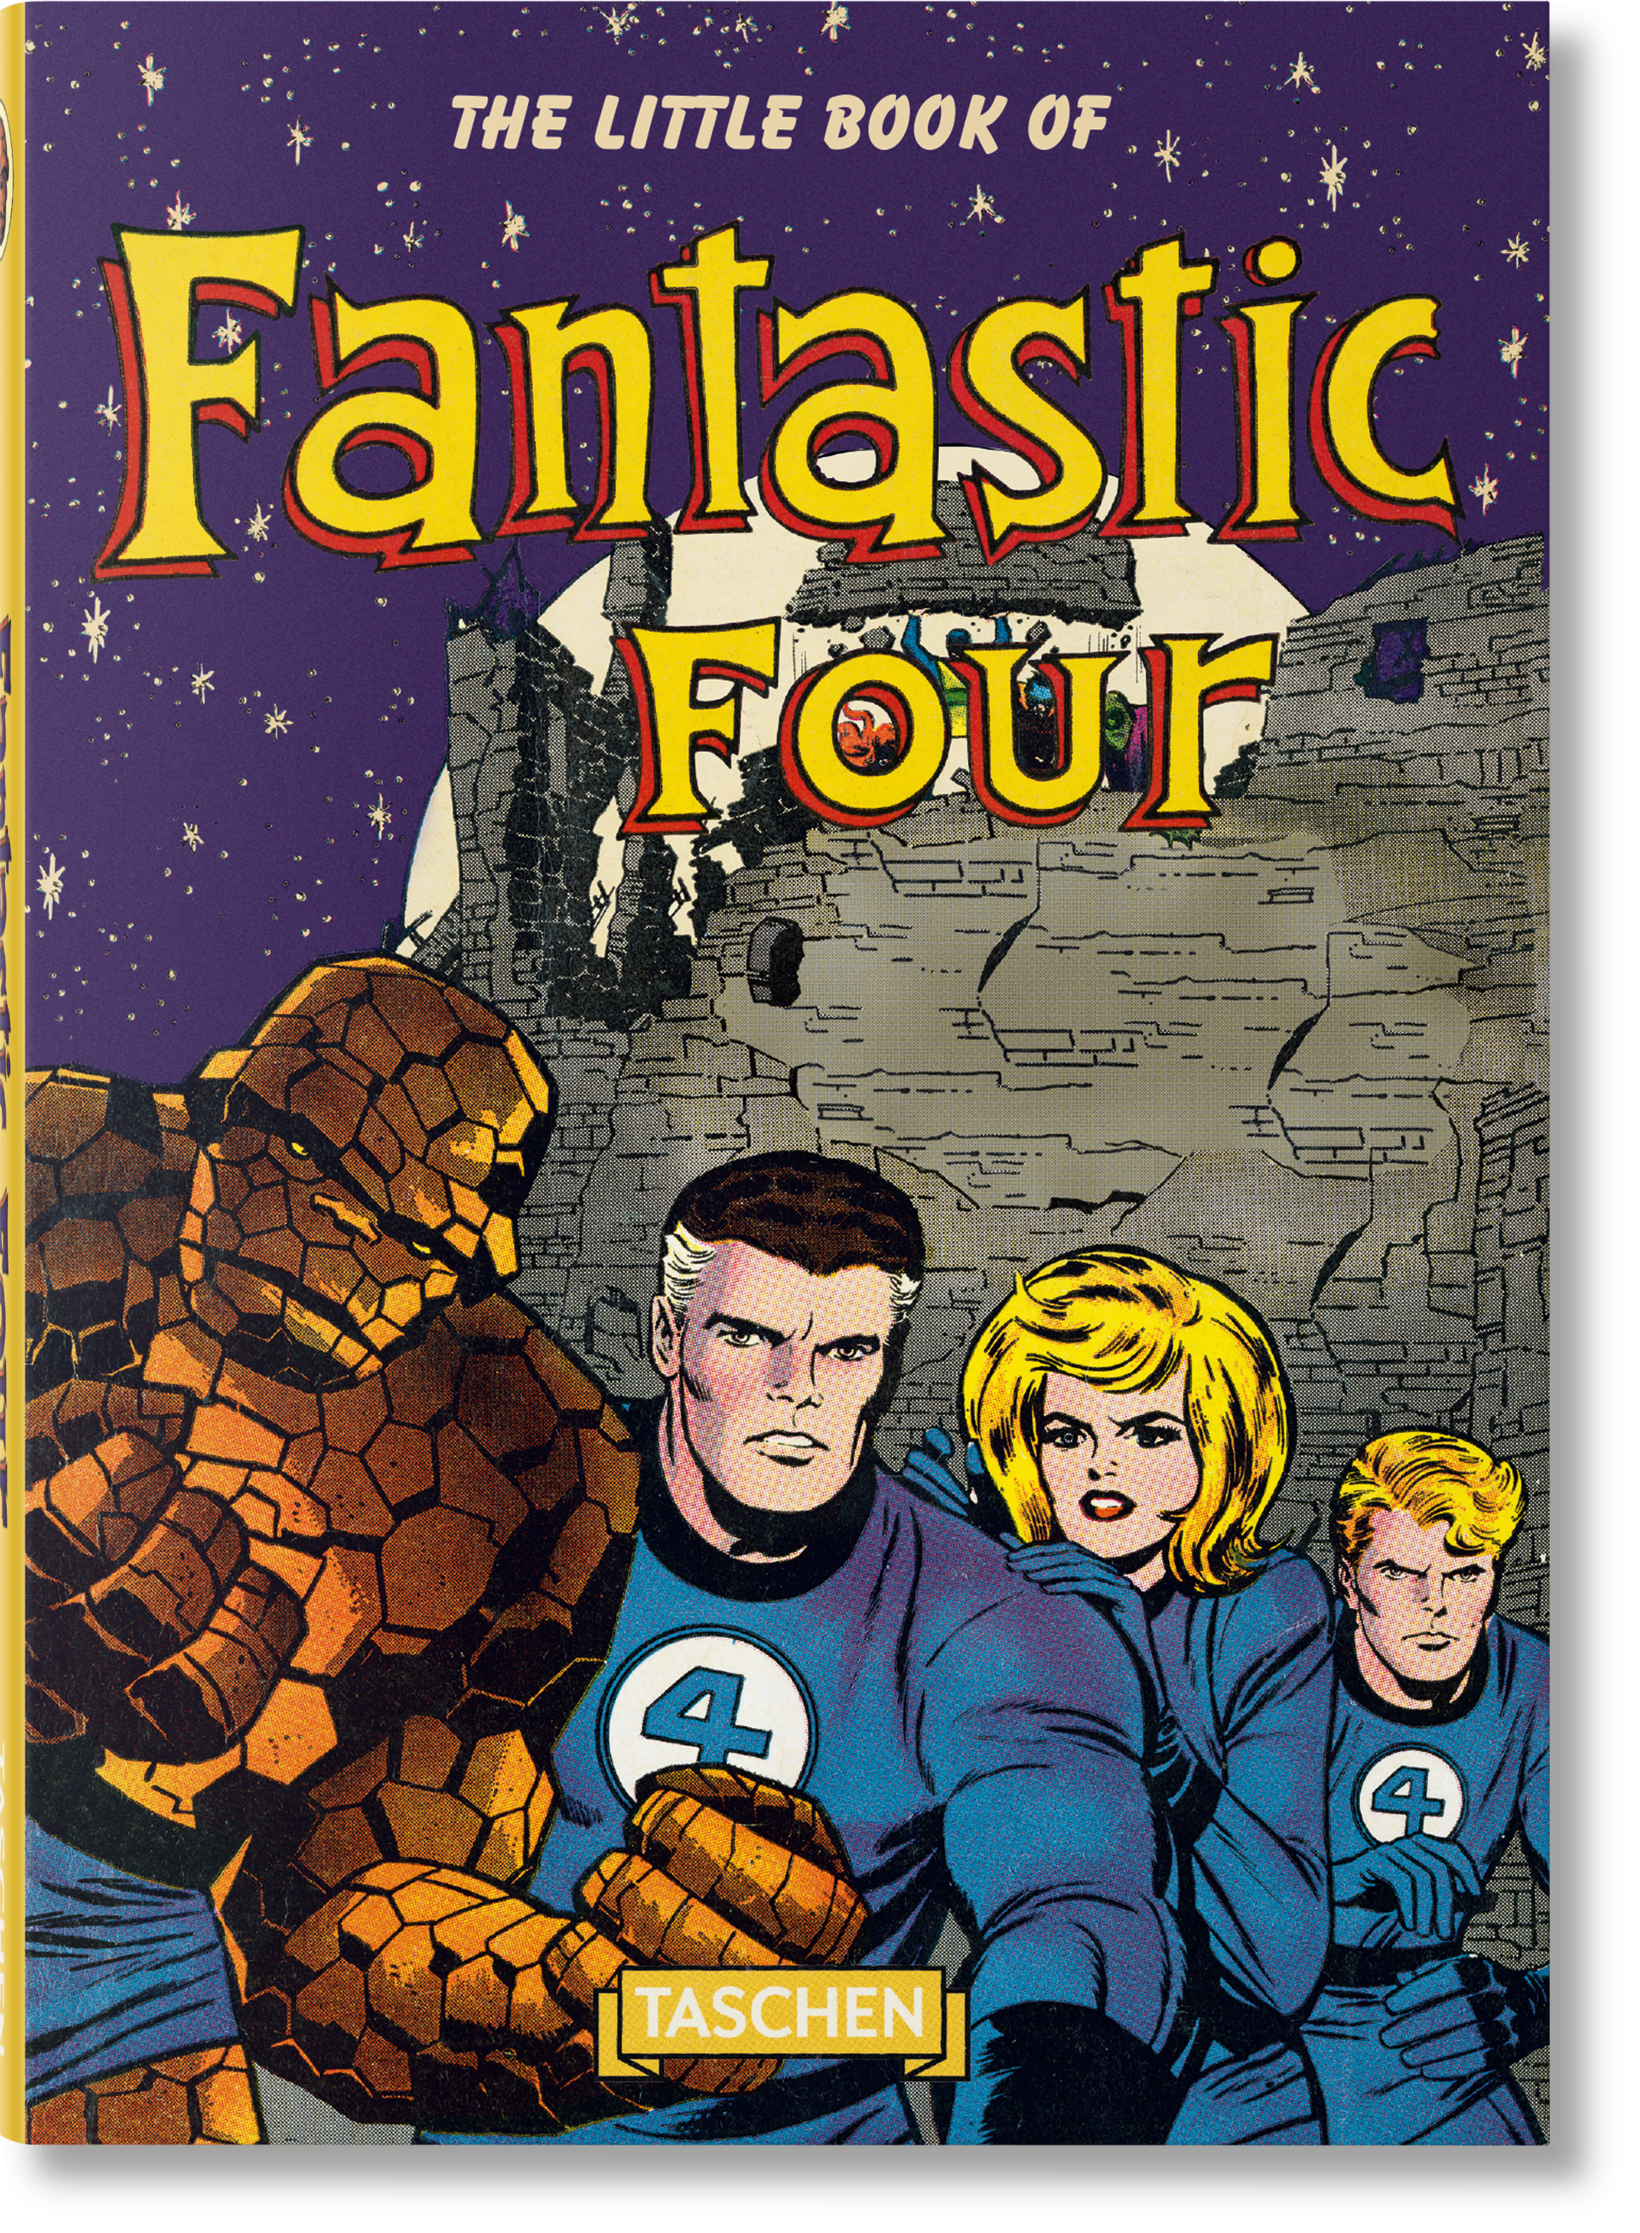 The Little Book Of Fantastic Four Image 1